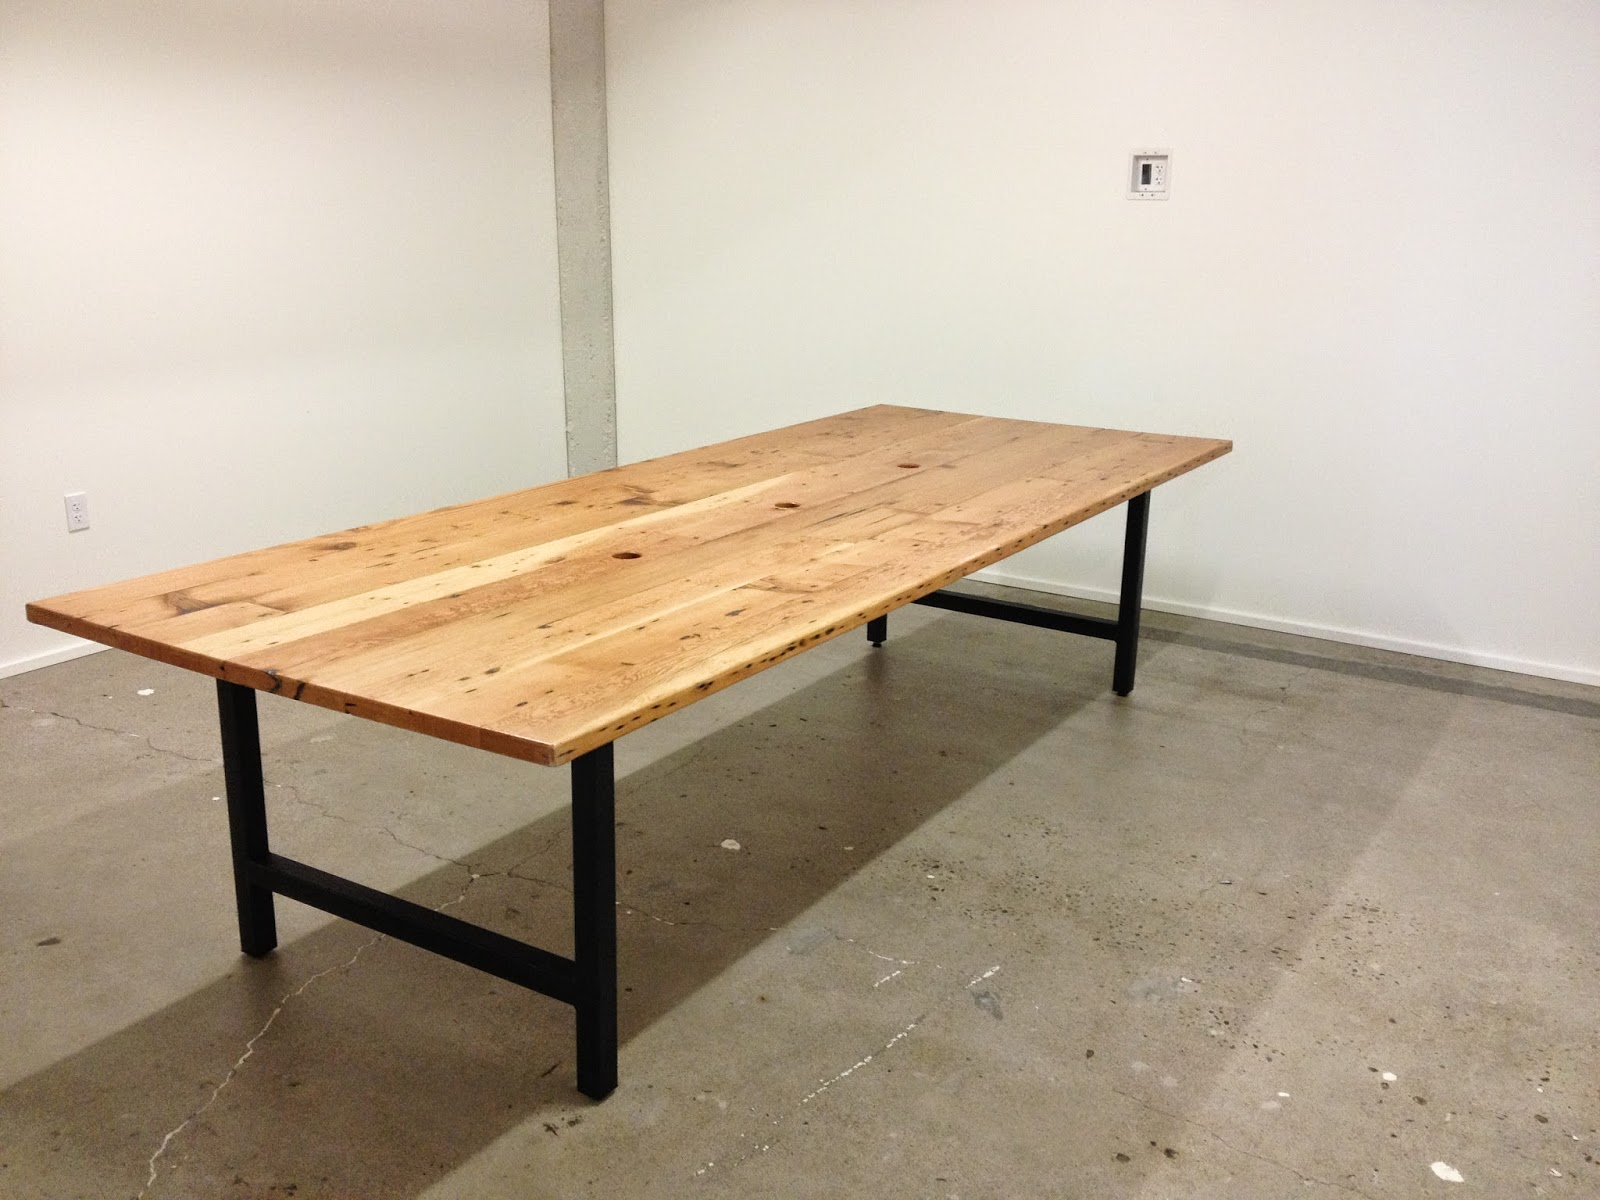 Pnw Reclaimed Douglas Fir Conference Table With Steel Legs - 10 foot conference table